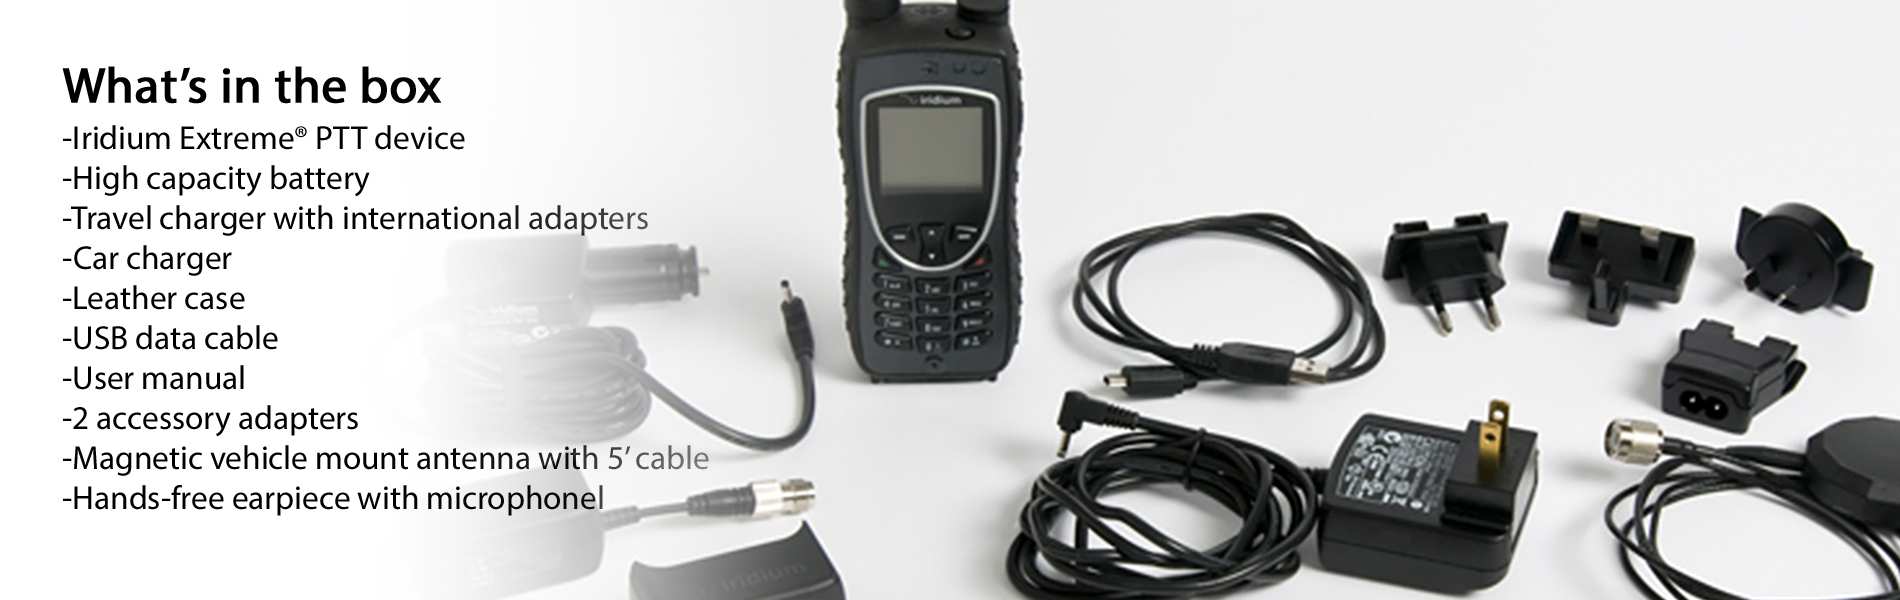 iridium-ptt-extreme-handset-what-is-in-the-box.jpg